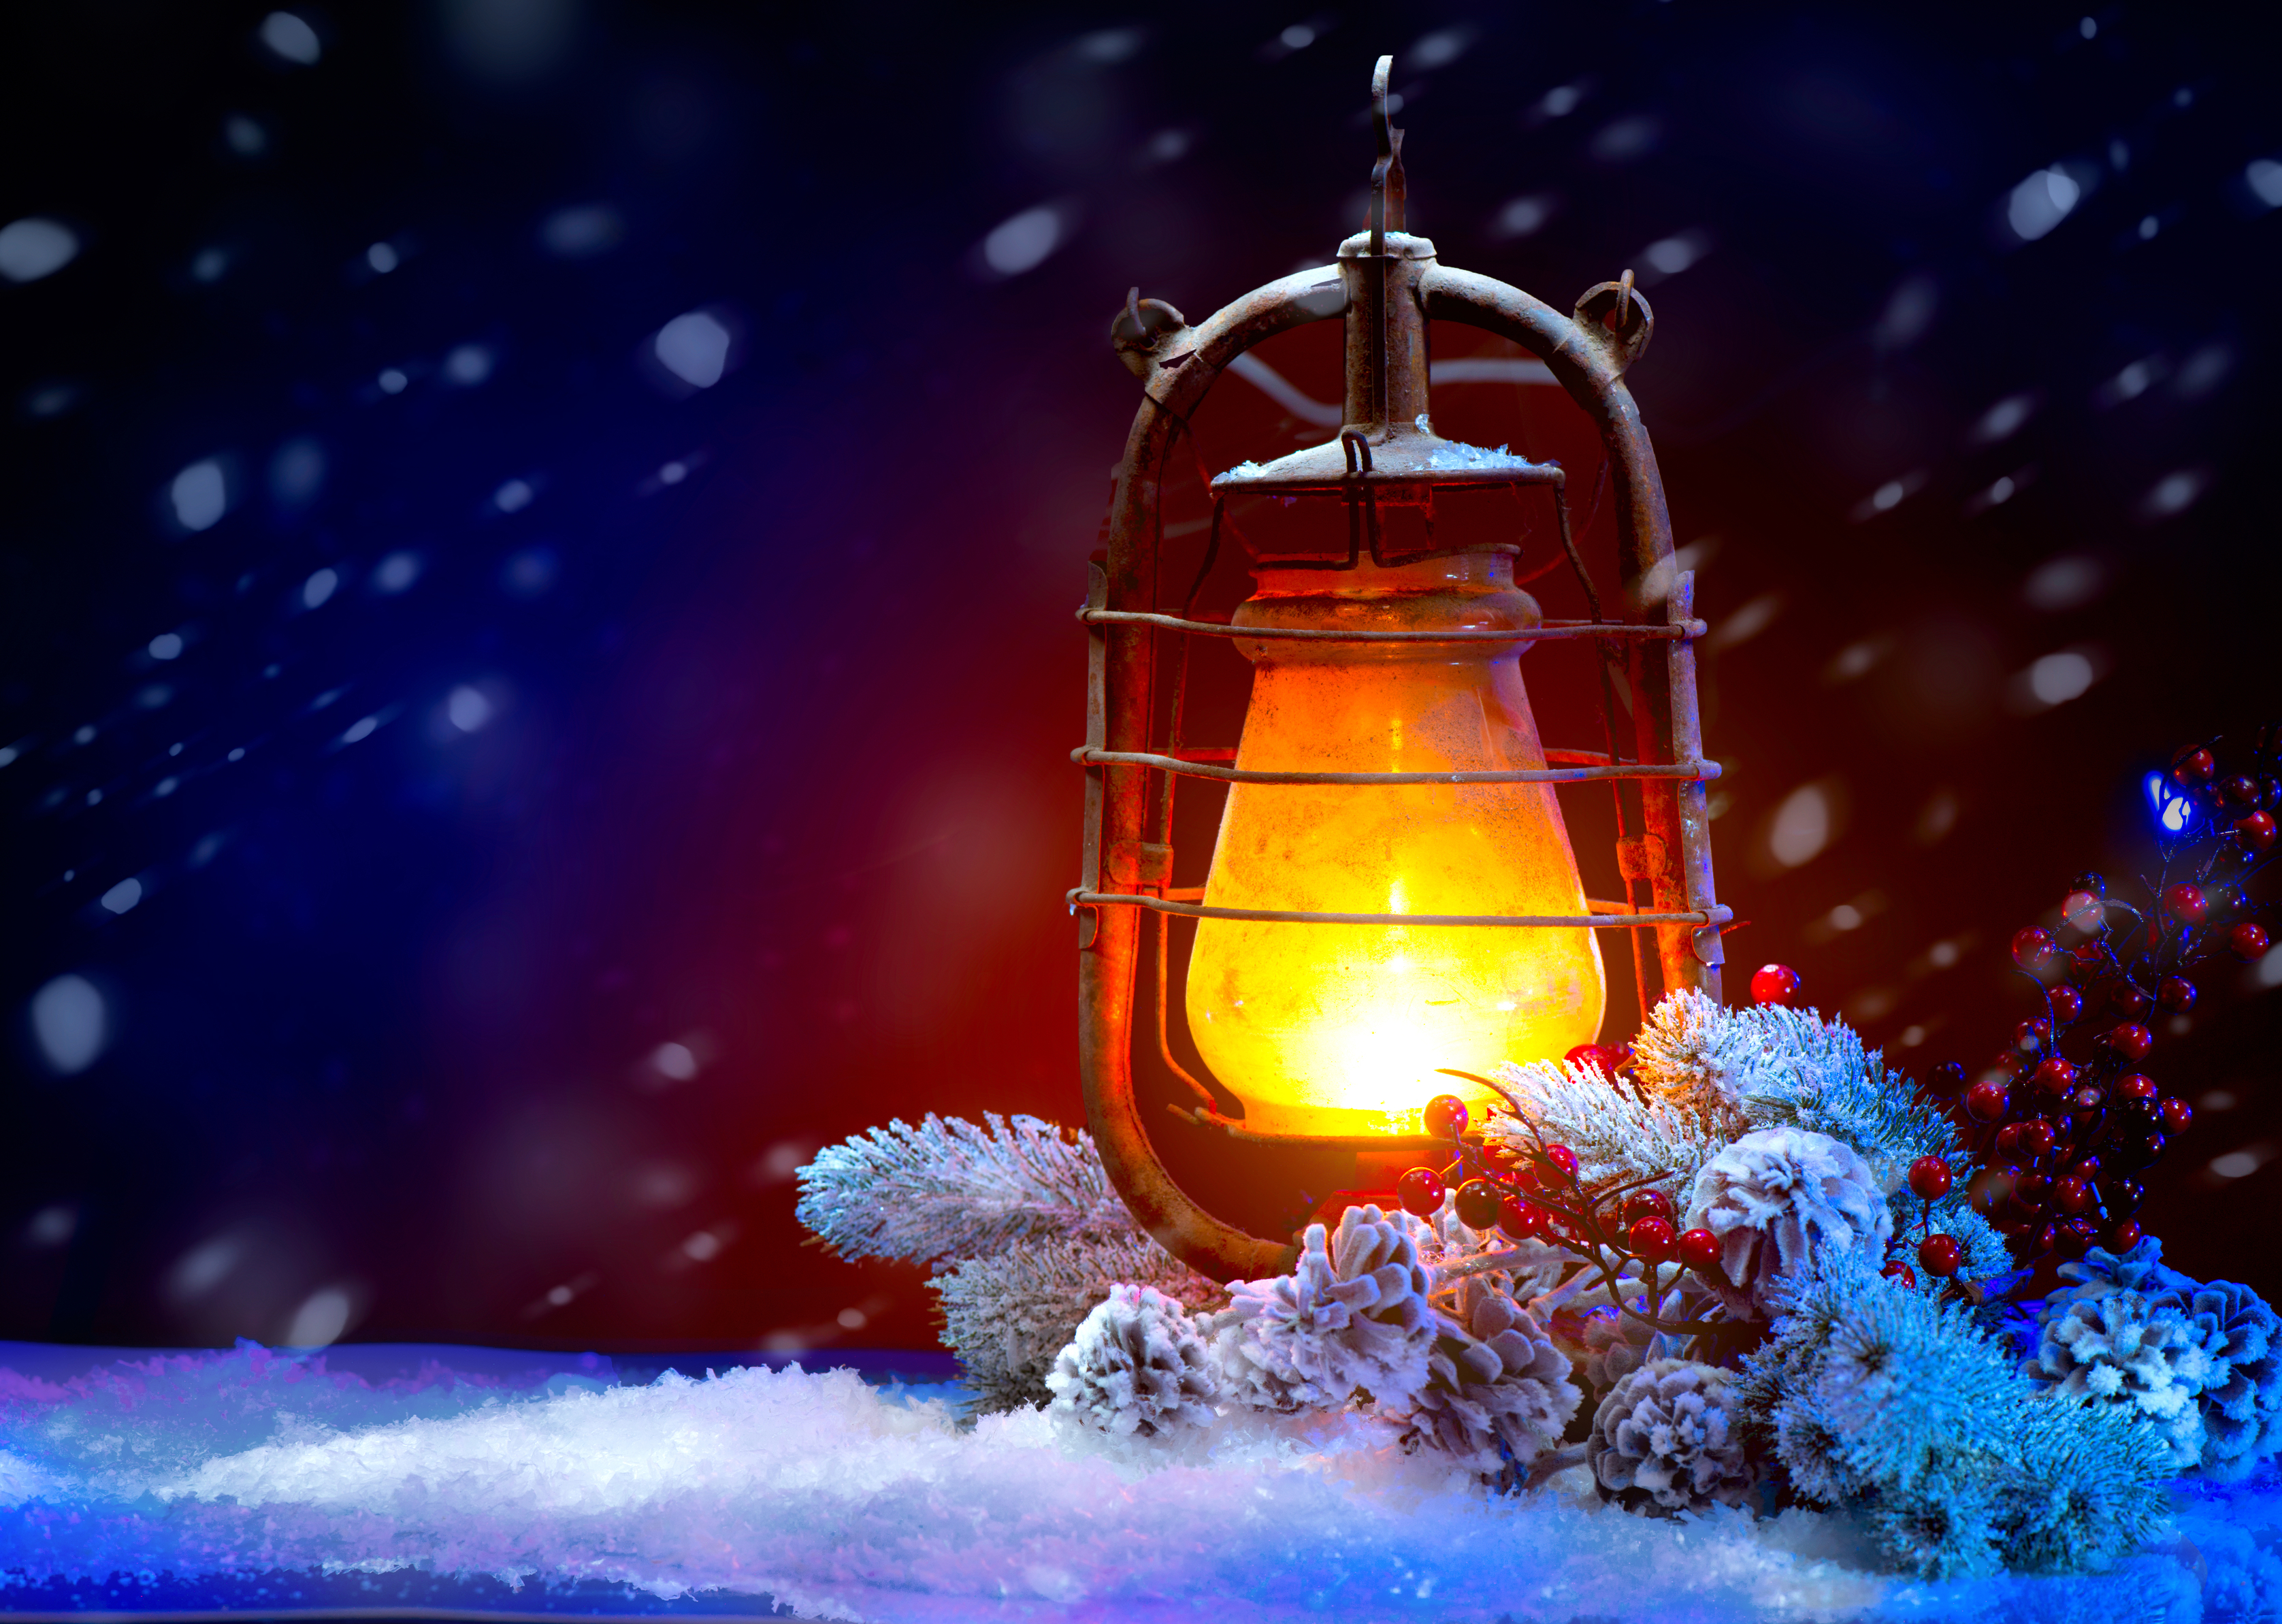 download wallpaper flame holiday lamp lantern light